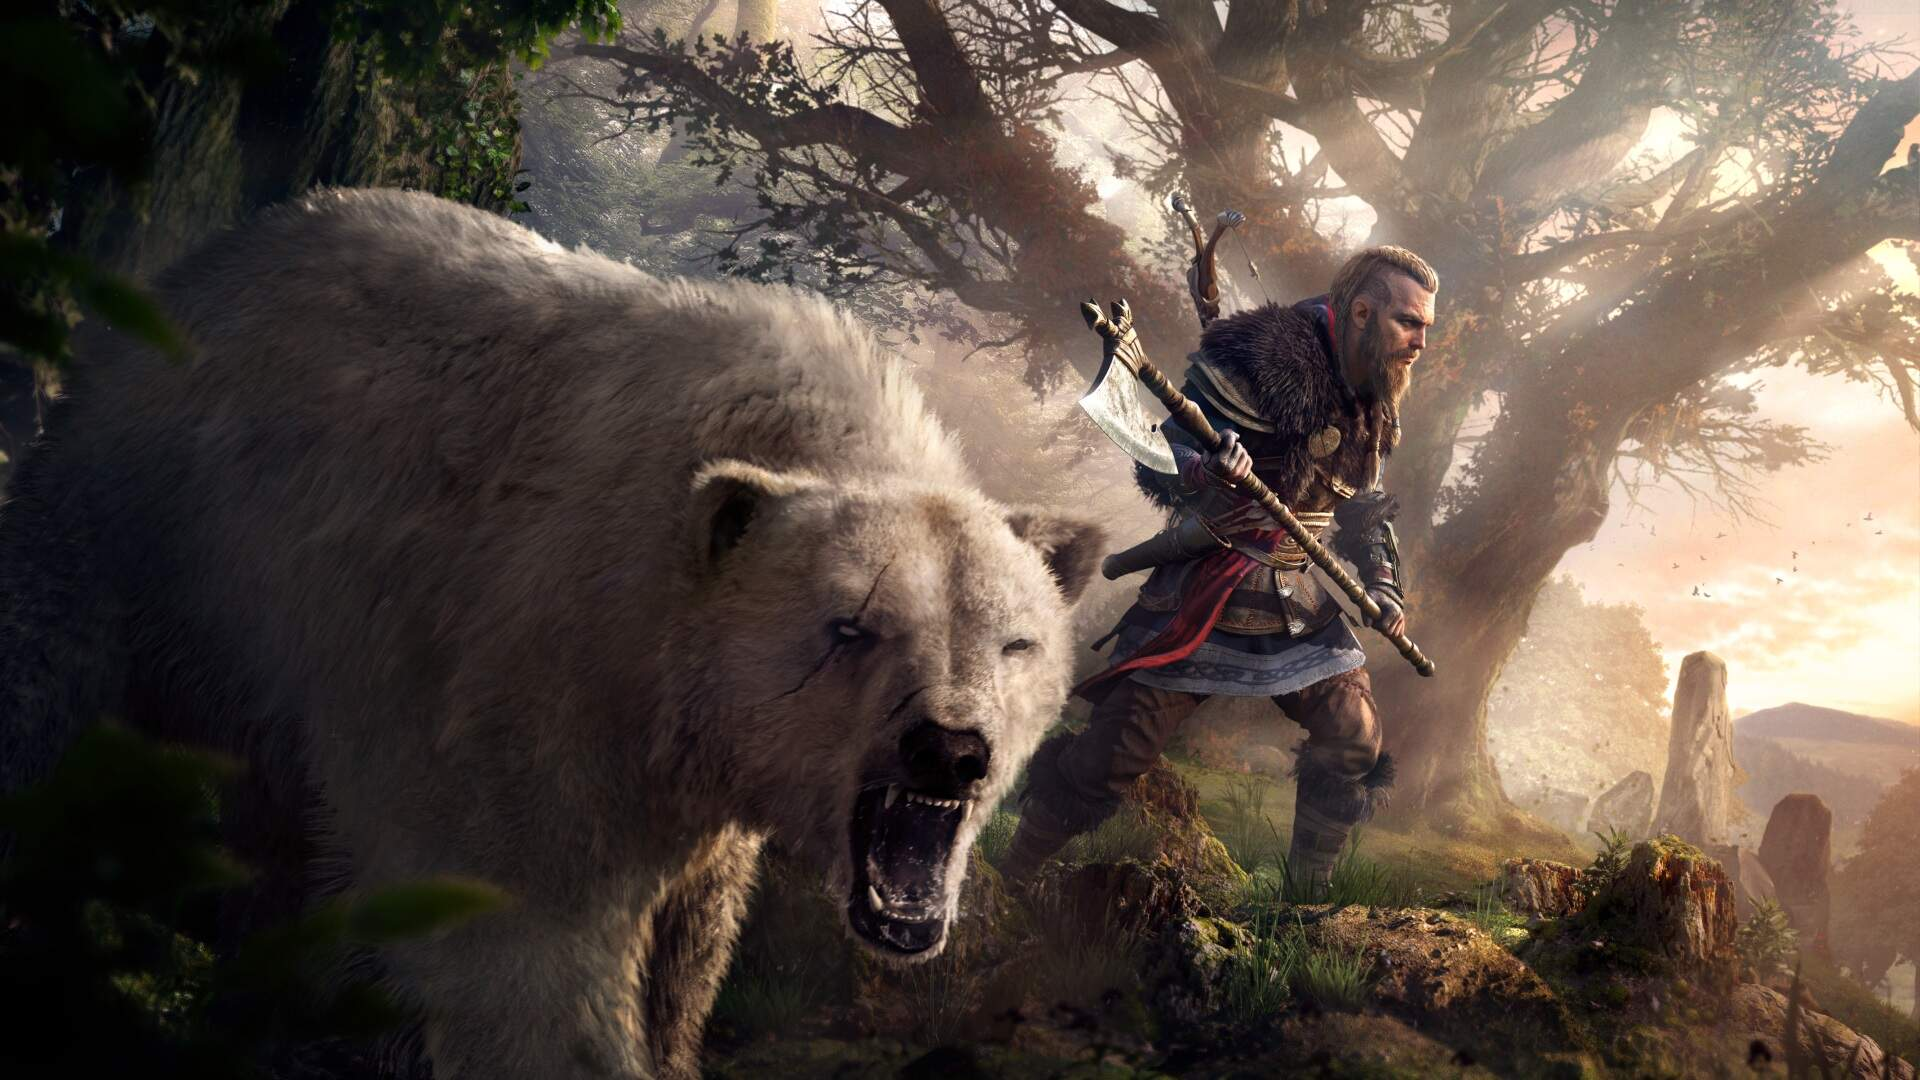 Assassin's Creed Valhalla's Beowulf Story DLC Leaked in Store Listing